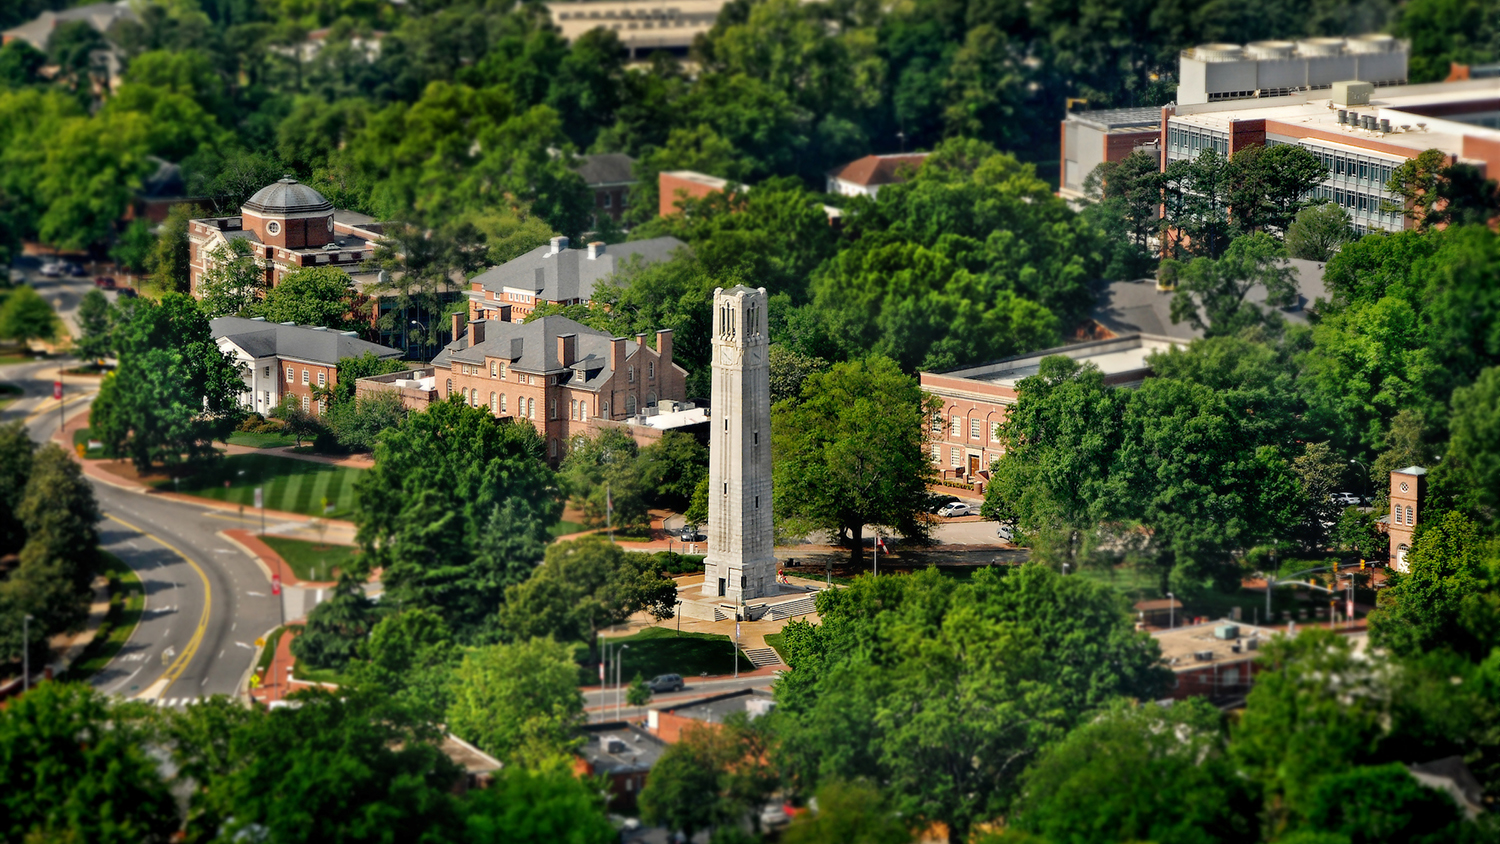 A view of NC State's campus from the air.